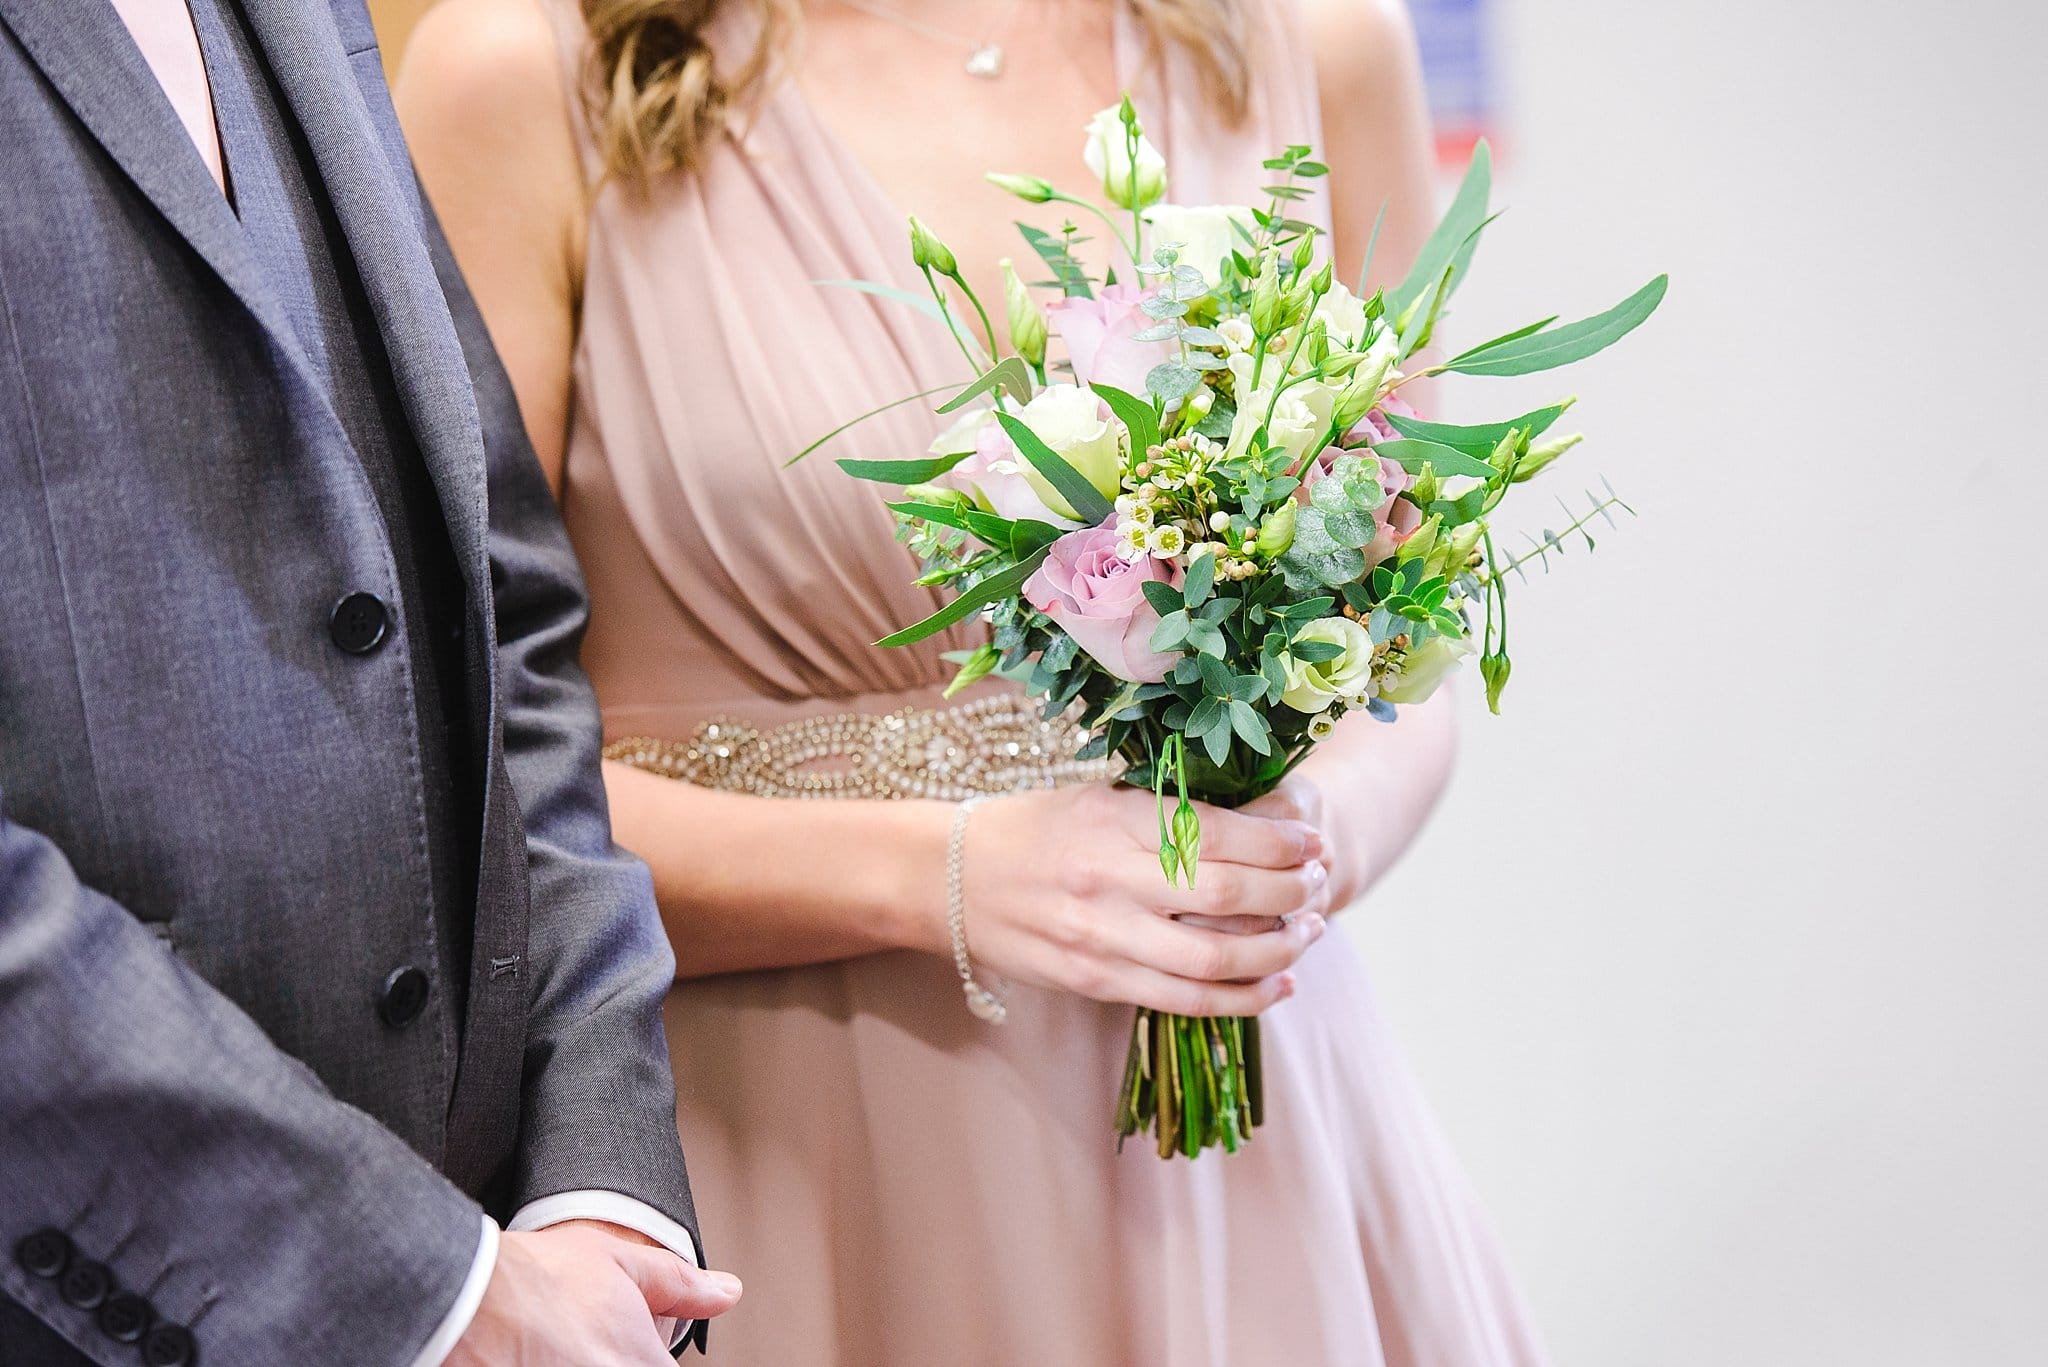 bride holding wedding flowers at her intimate wedding ceremony